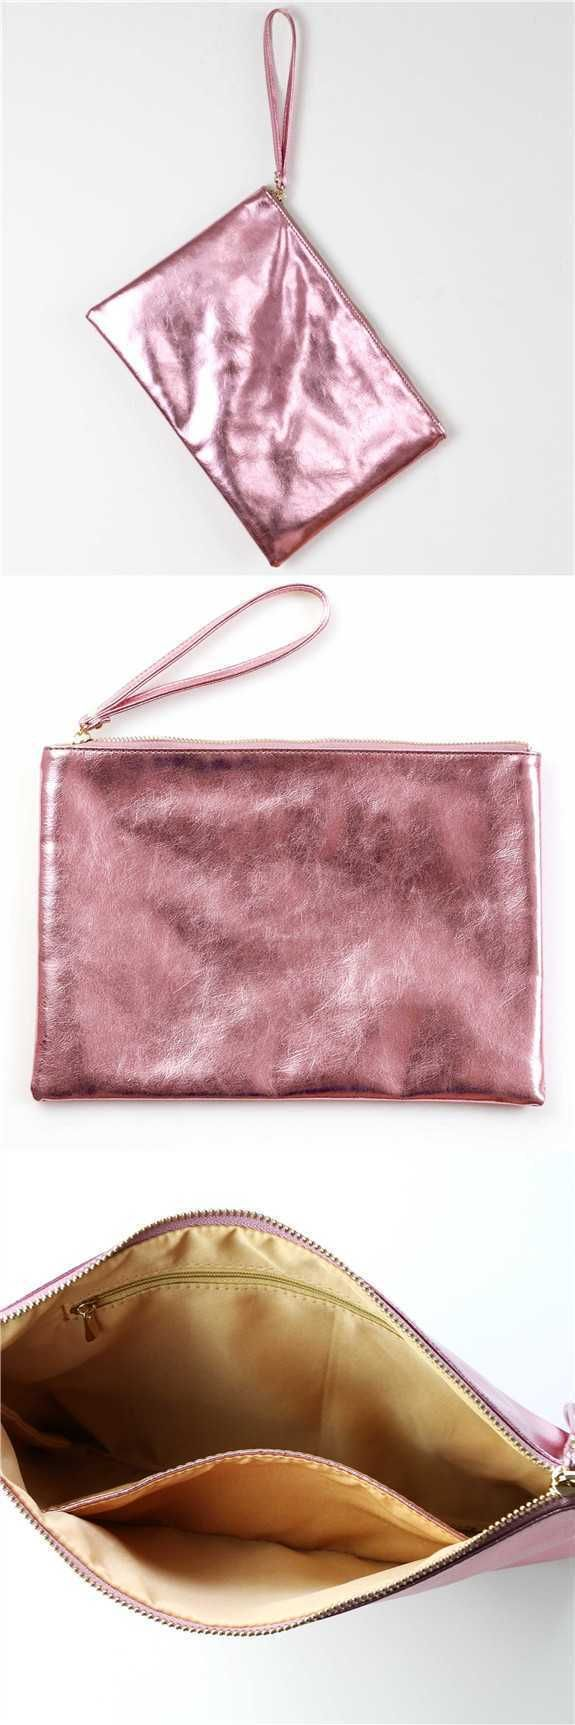 wristlet clutch purse clutch bag evening wallet metallic clutch bag lustre purse leather. Save.extra 20% OFF on $45+ Sitewide till 30th use code SUMMER20%OFF